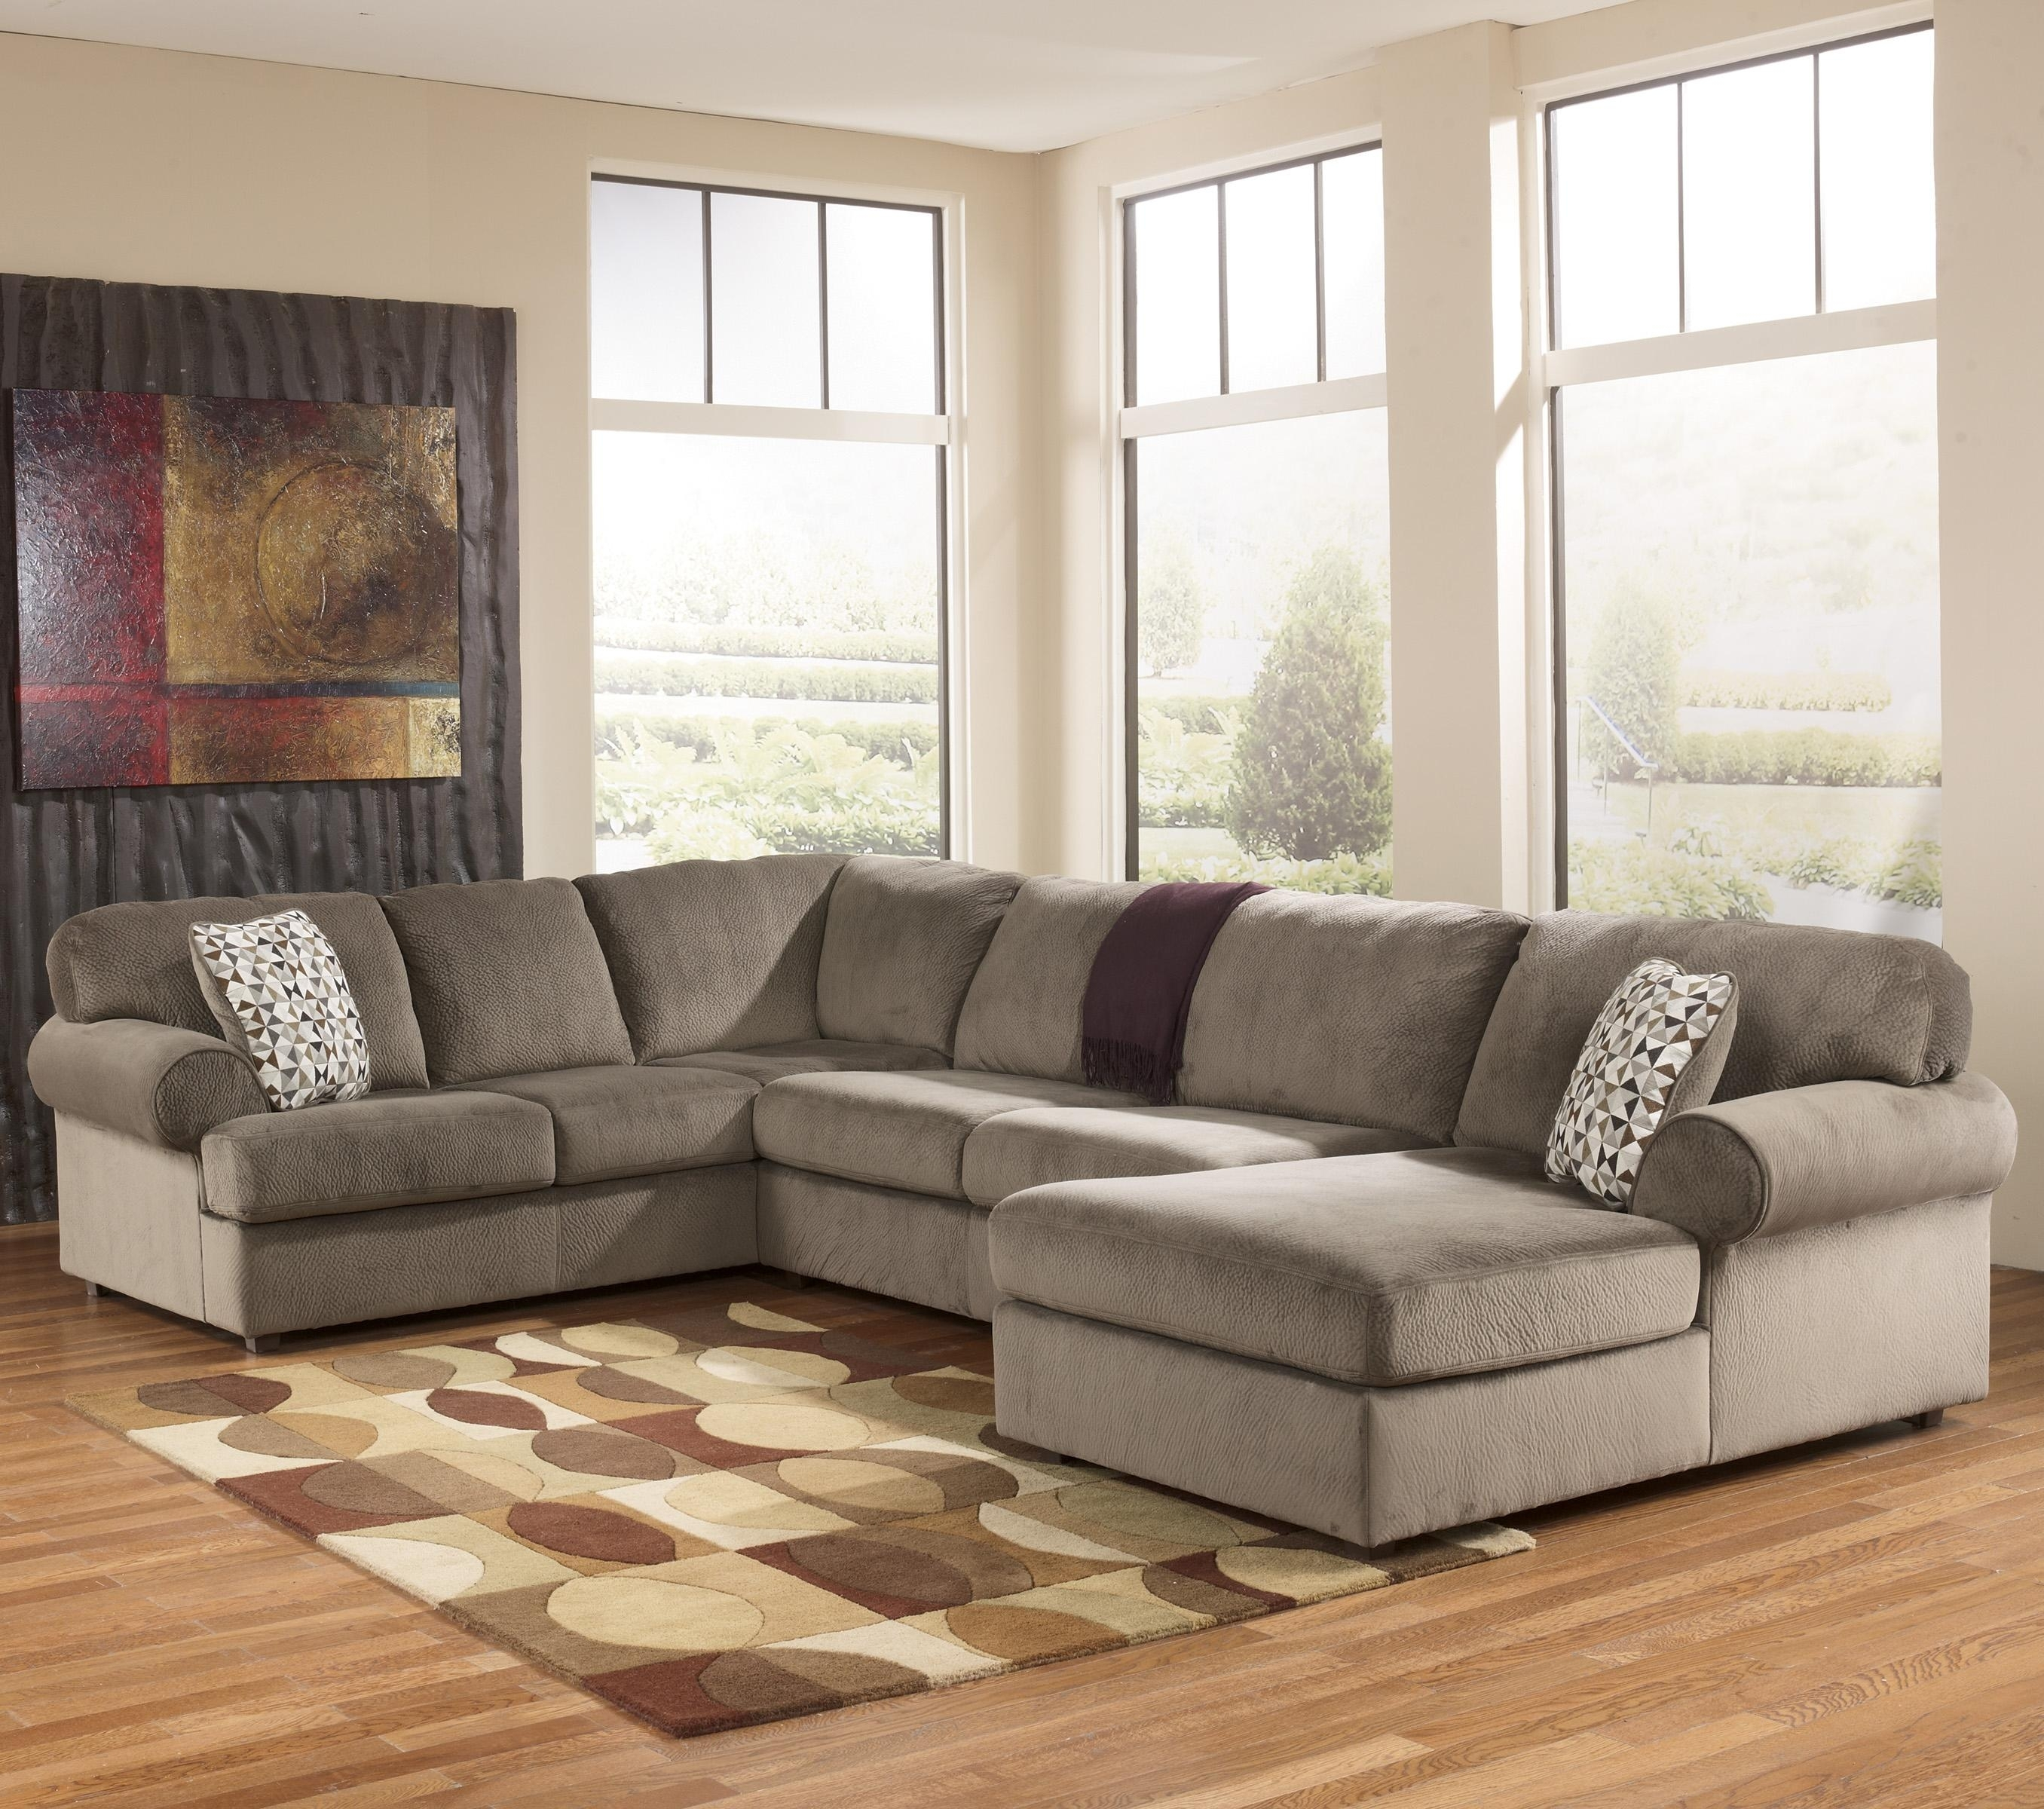 Signature Designashley Jessa Place - Dune Casual Sectional Sofa for Killeen Tx Sectional Sofas (Image 9 of 10)